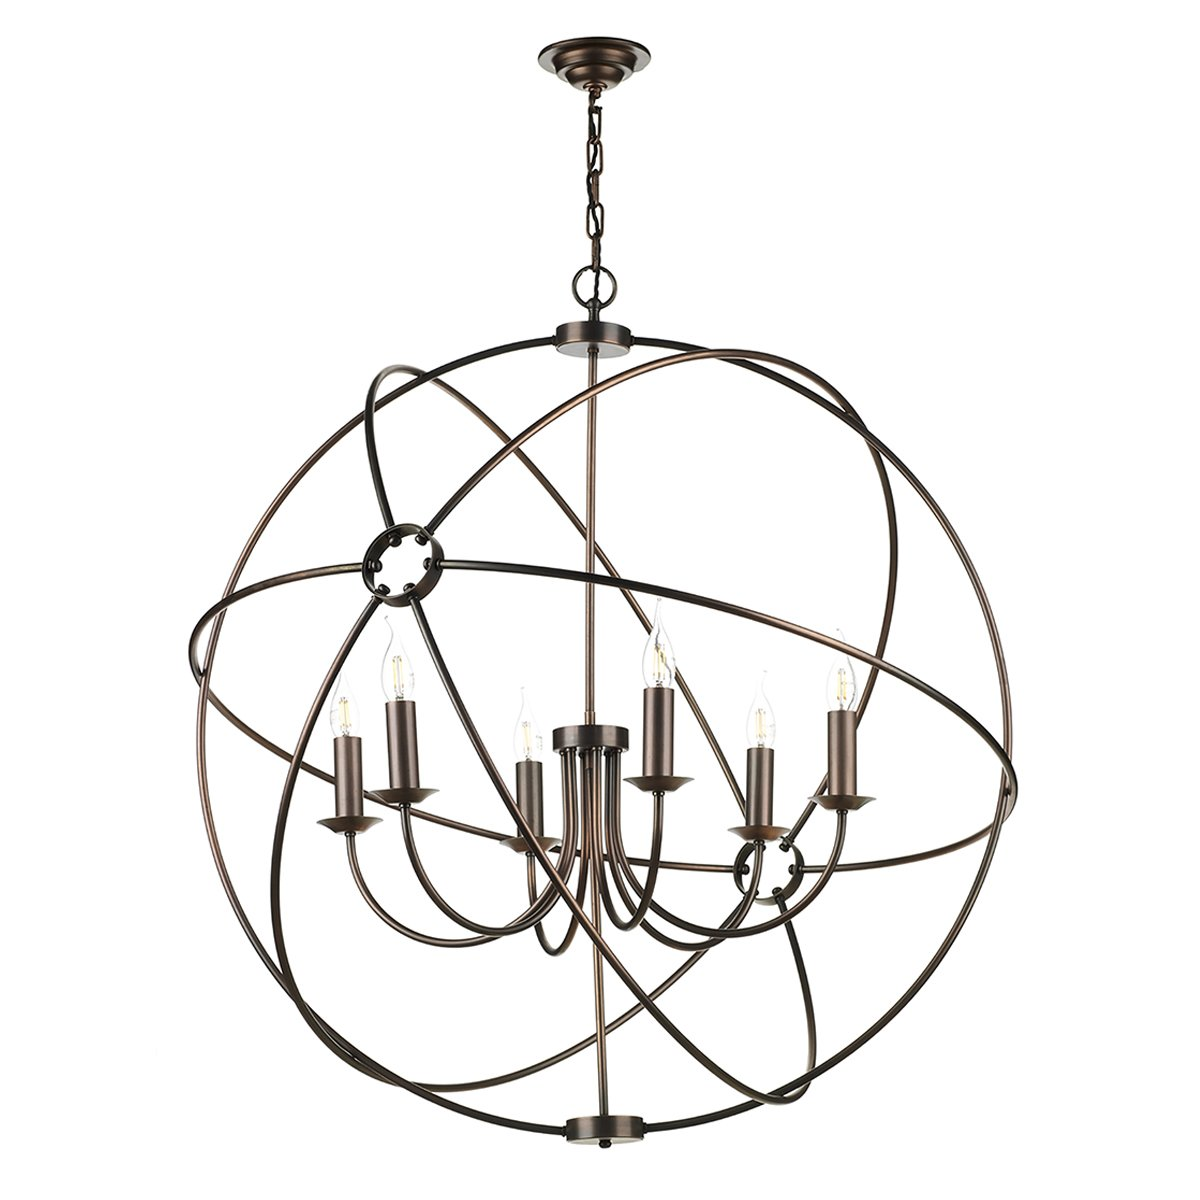 David Hunt Lighting ORB0664 Orb 6 Light Pendant in Antique Copper Finish